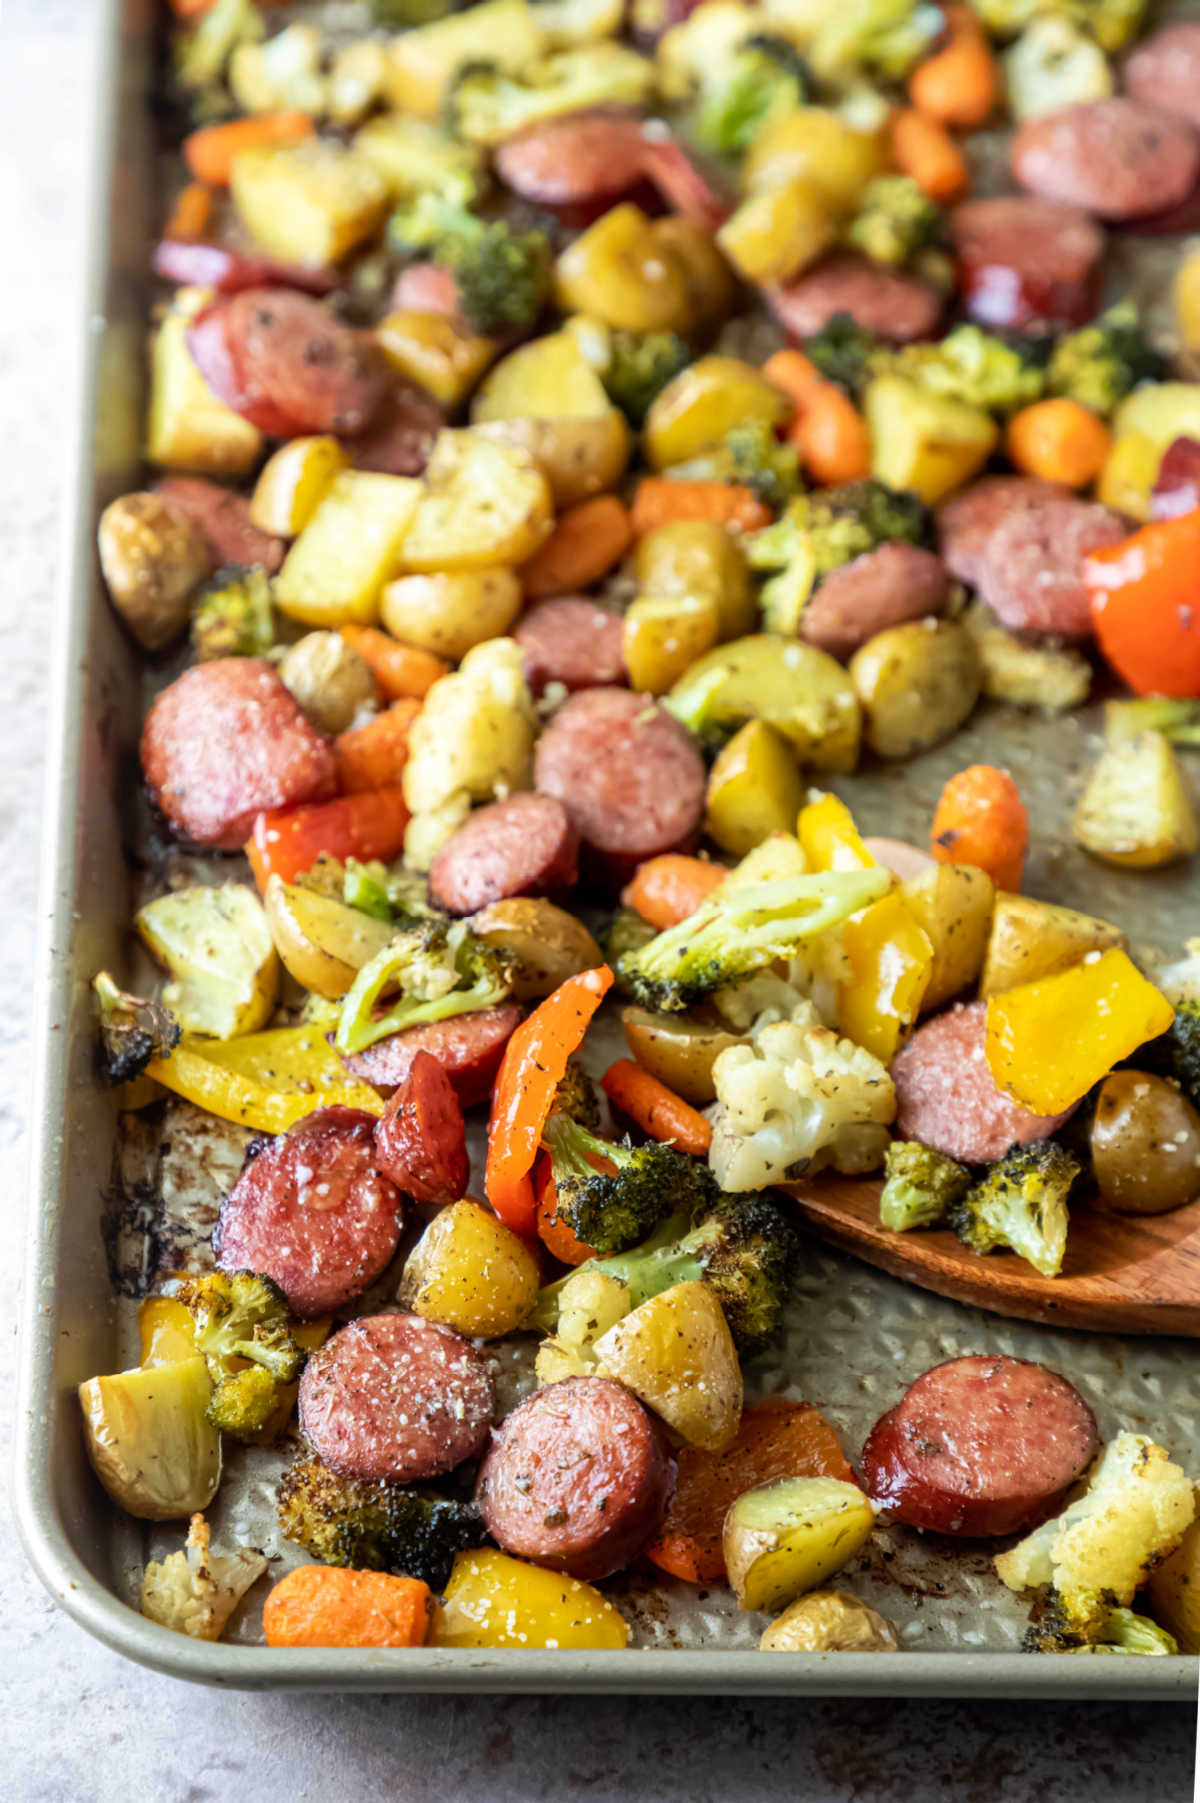 Wooden spoon and roast veggies on a sheet pan.